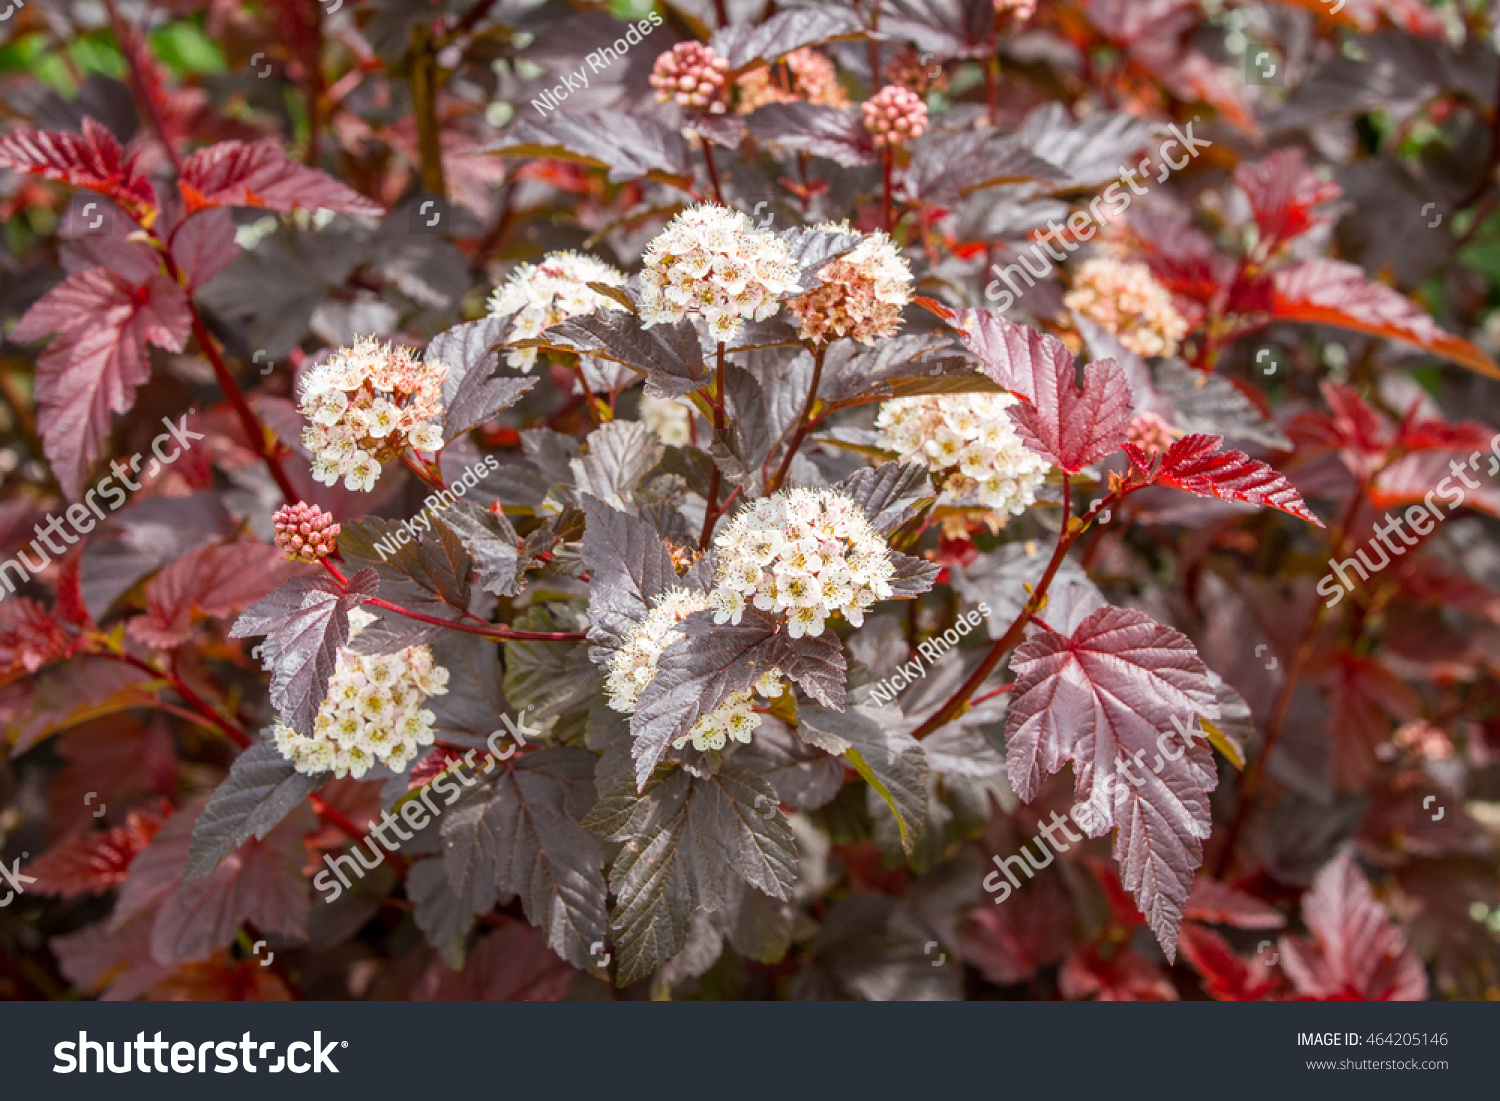 Flowering physocarpus red leaves white flowers stock photo edit now flowering physocarpus with red leaves and white flowers also called ninebark a popular red leaved mightylinksfo